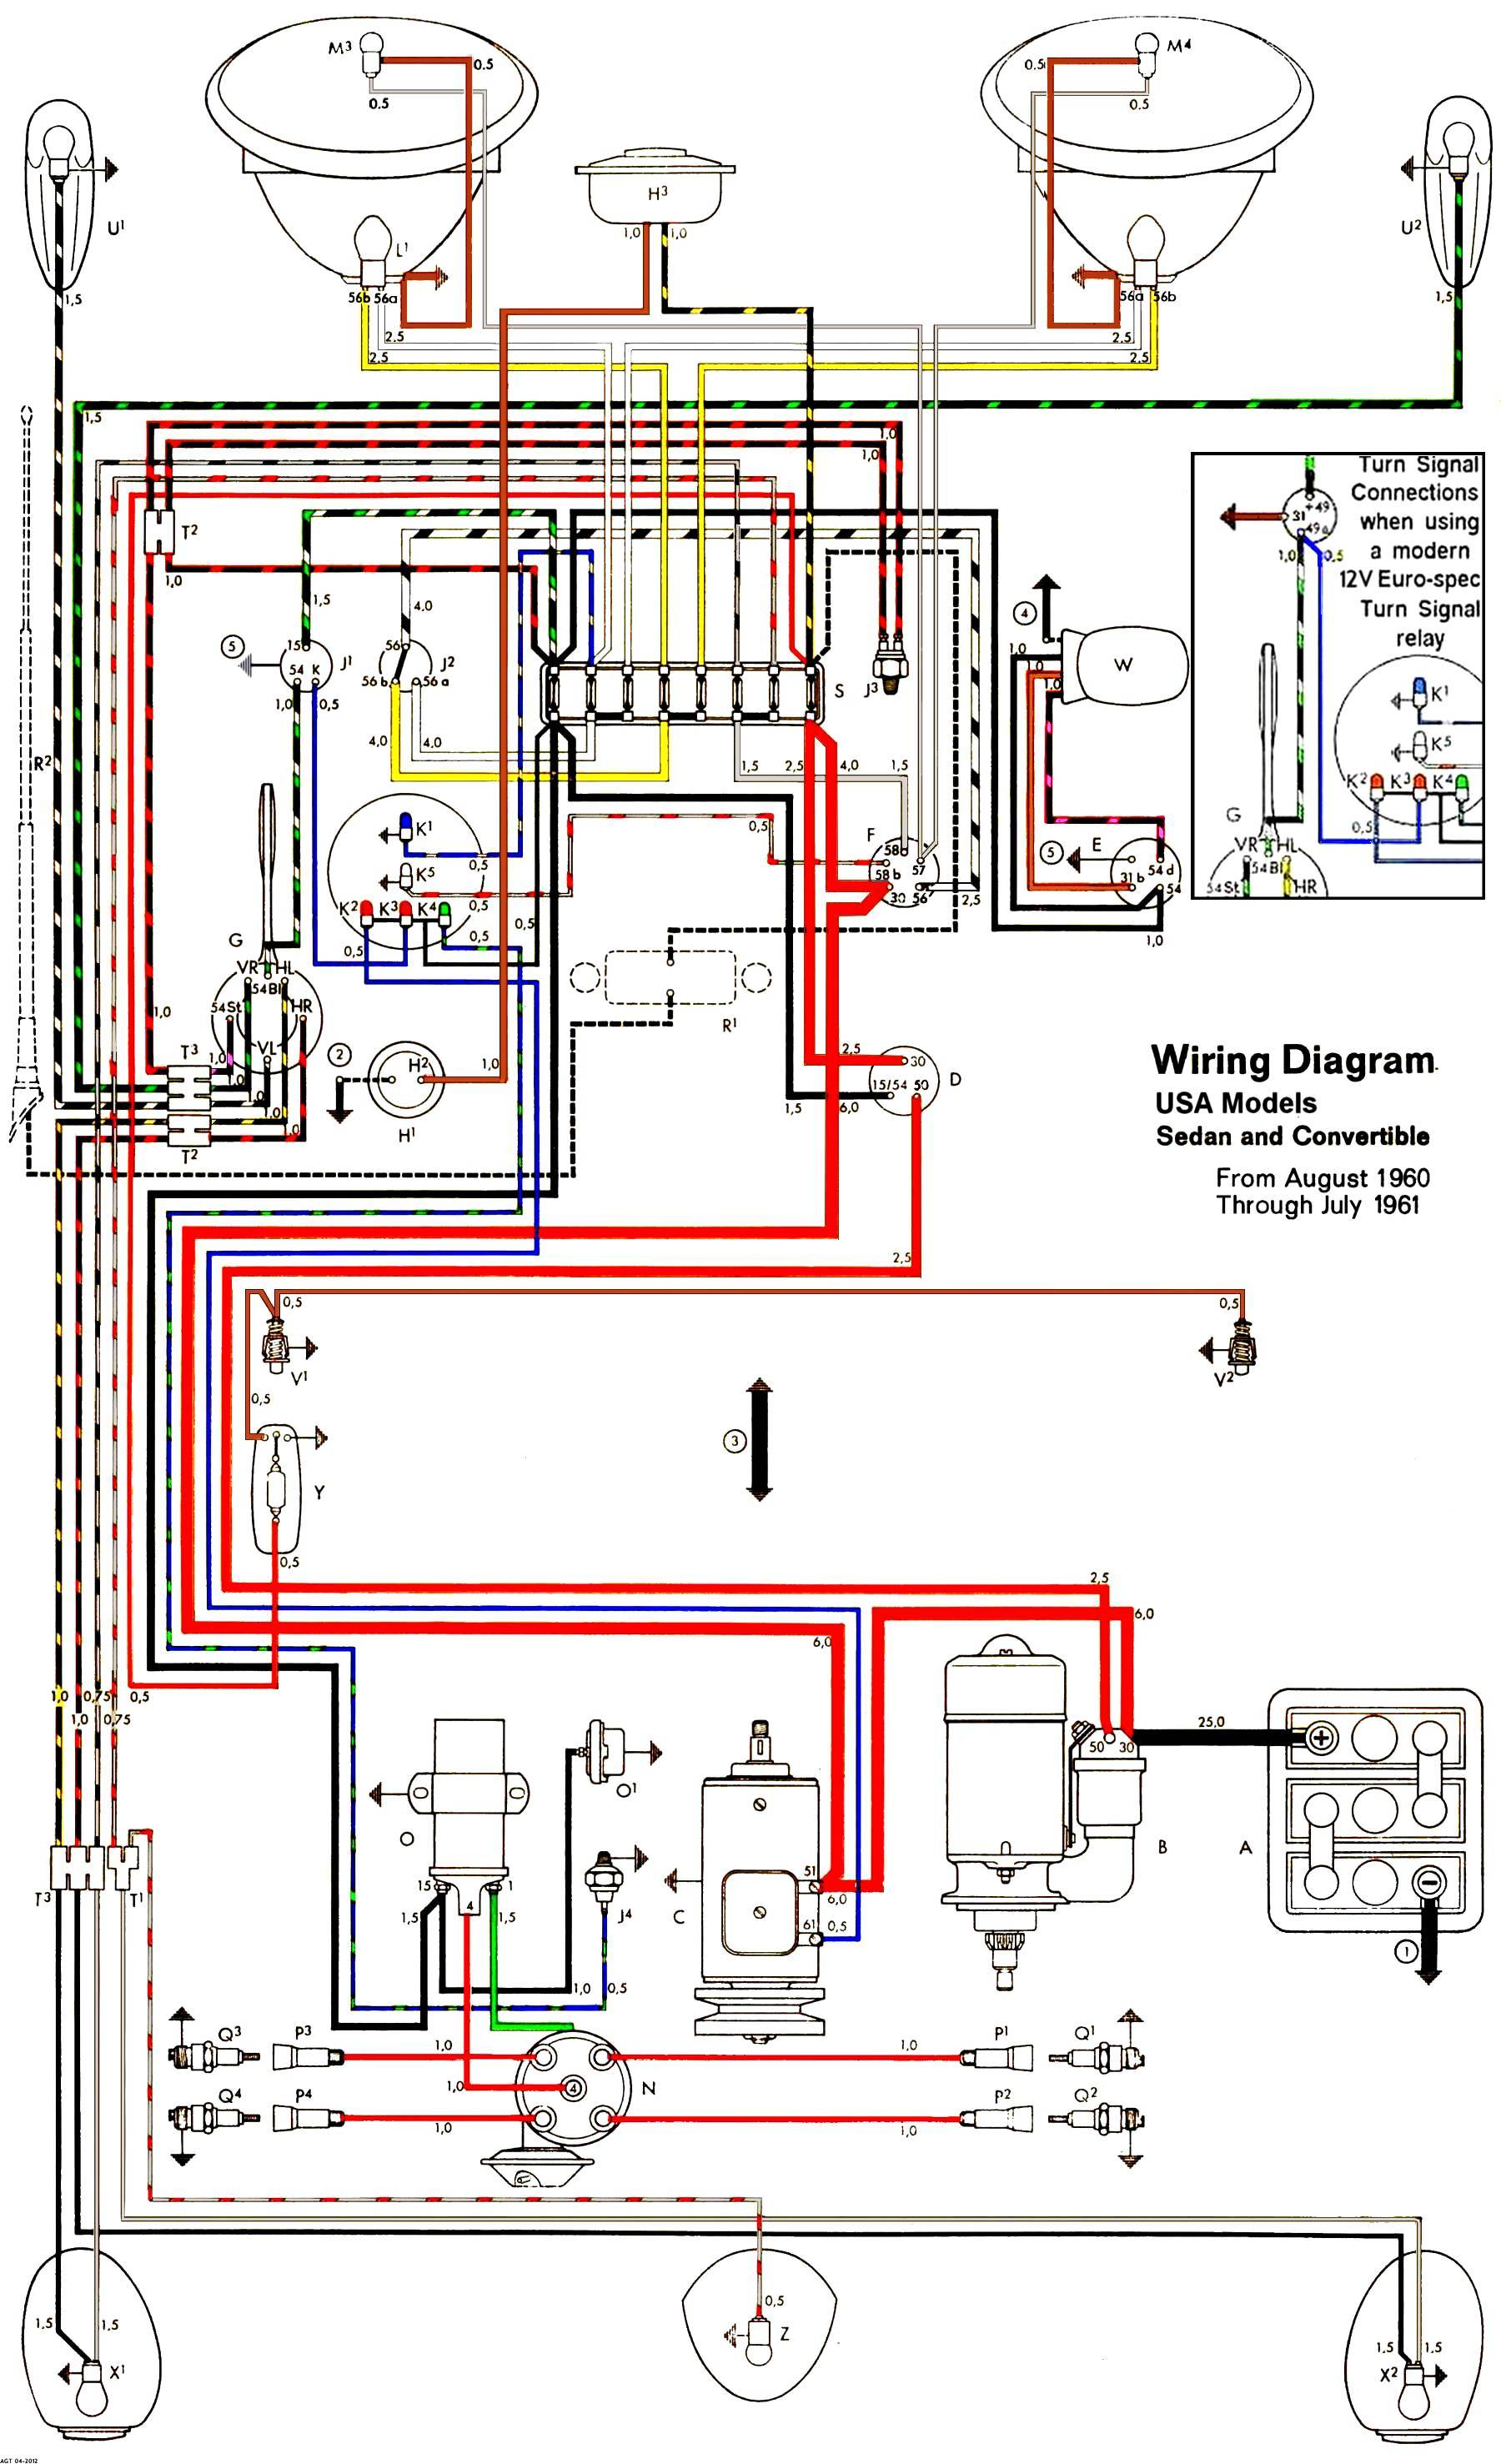 thesamba.com :: type 1 wiring diagrams  thesamba.com